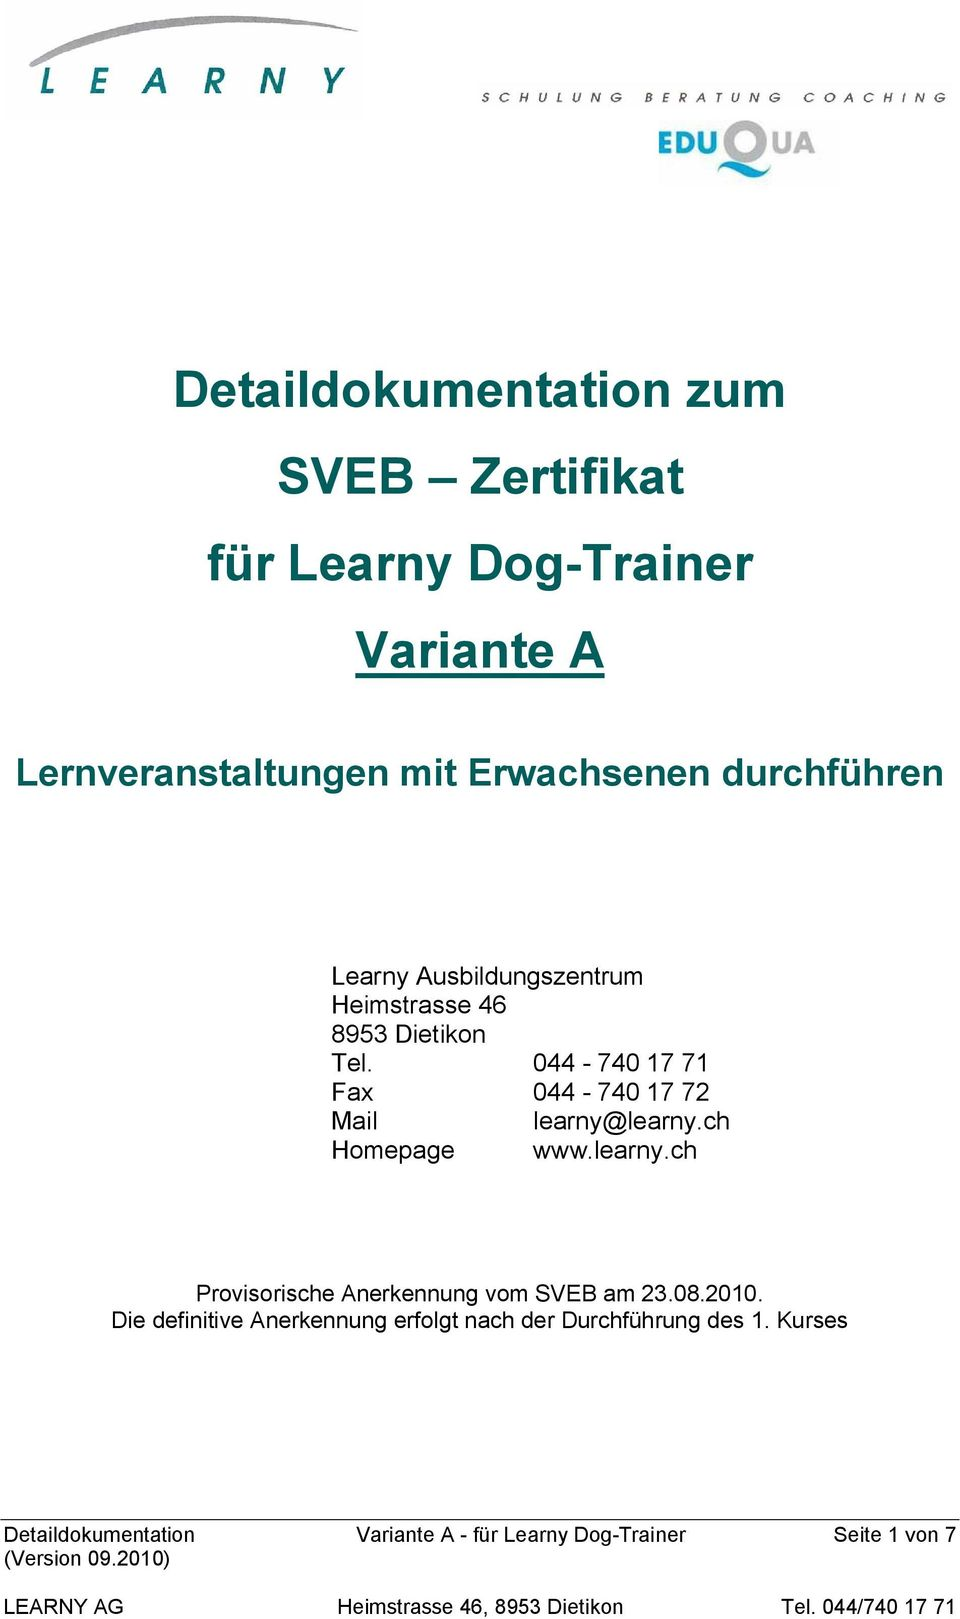 044-740 17 71 Fax 044-740 17 72 Mail learny@learny.ch Homepage www.learny.ch Provisorische Anerkennung vom SVEB am 23.